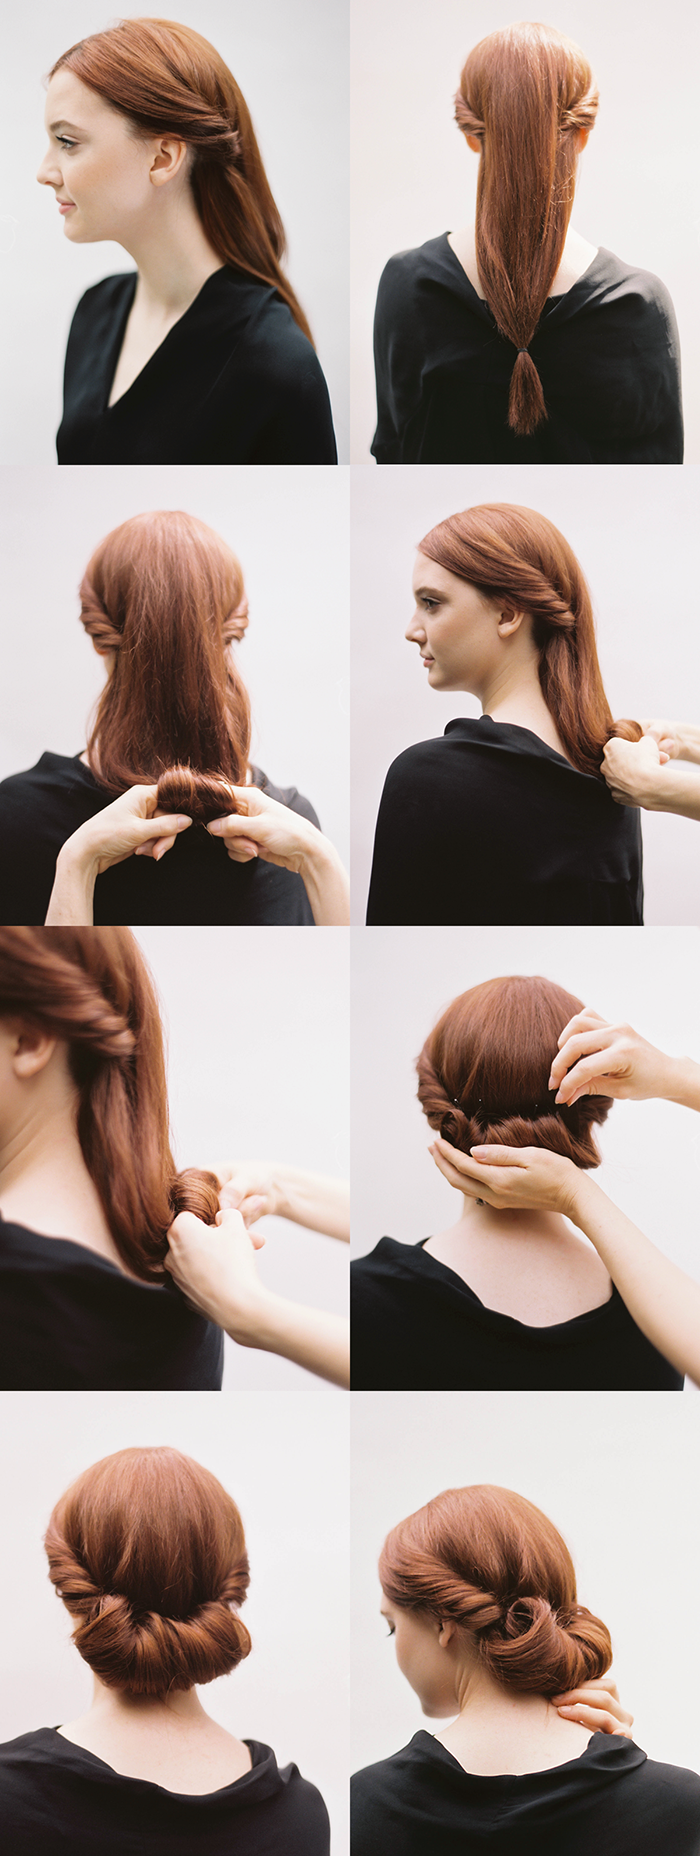 Try Different Hairstyles Amusing Diy Rolled Chignon Hair Tutorial  Pinterest  Chignons Chignon